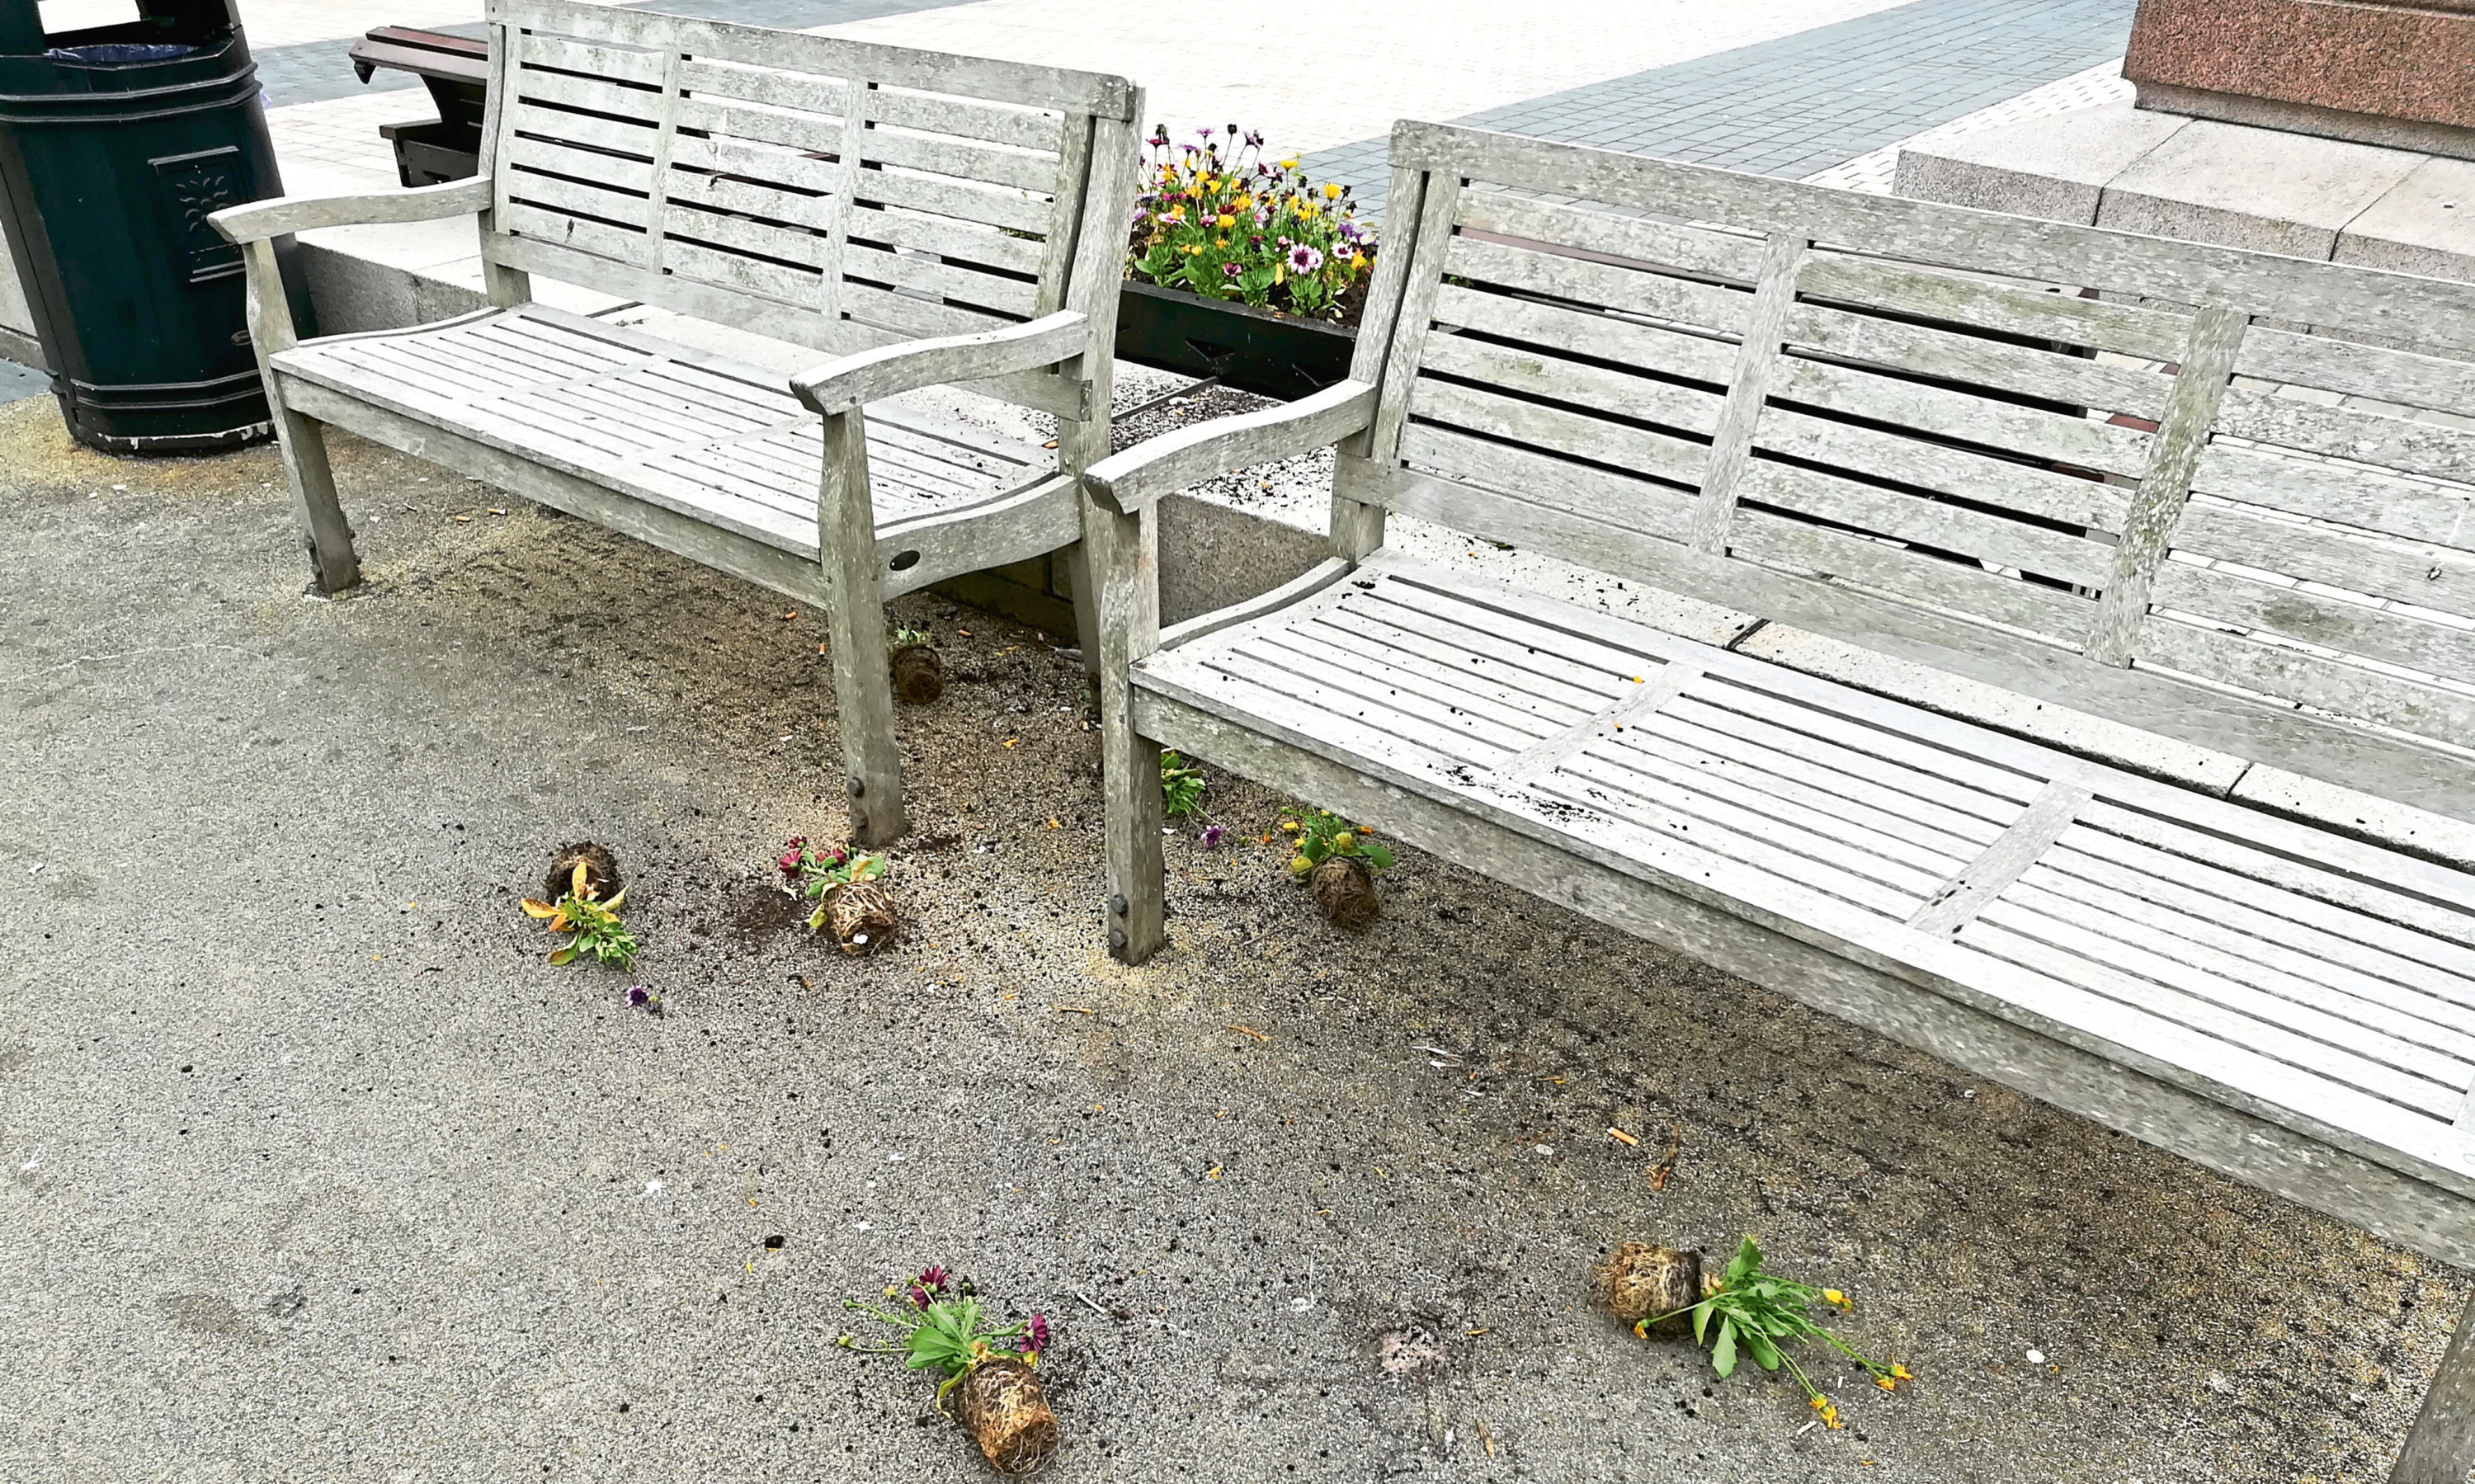 Pathetic: Flowers strewn on the ground after being ripped from a planter in Meadowside, Dundee.